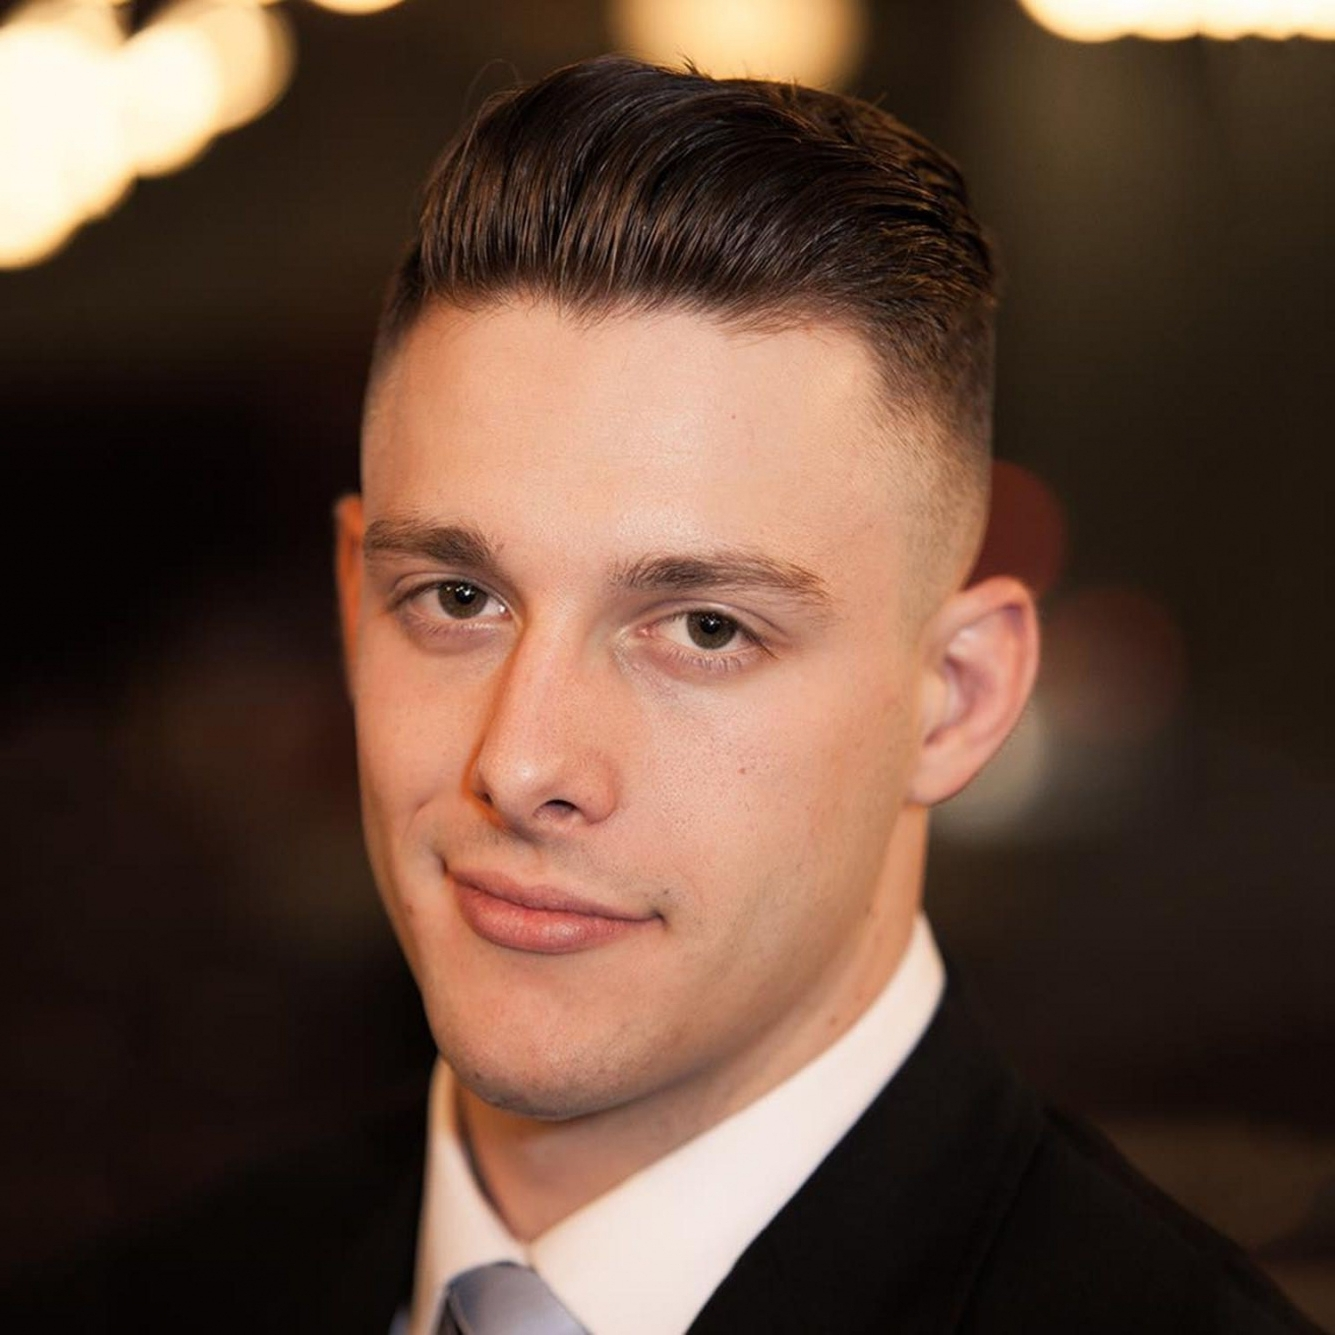 Most Current Wedding Hairstyles For Mens Regarding Wedding Hairstyles For Short Hair Men (View 5 of 15)